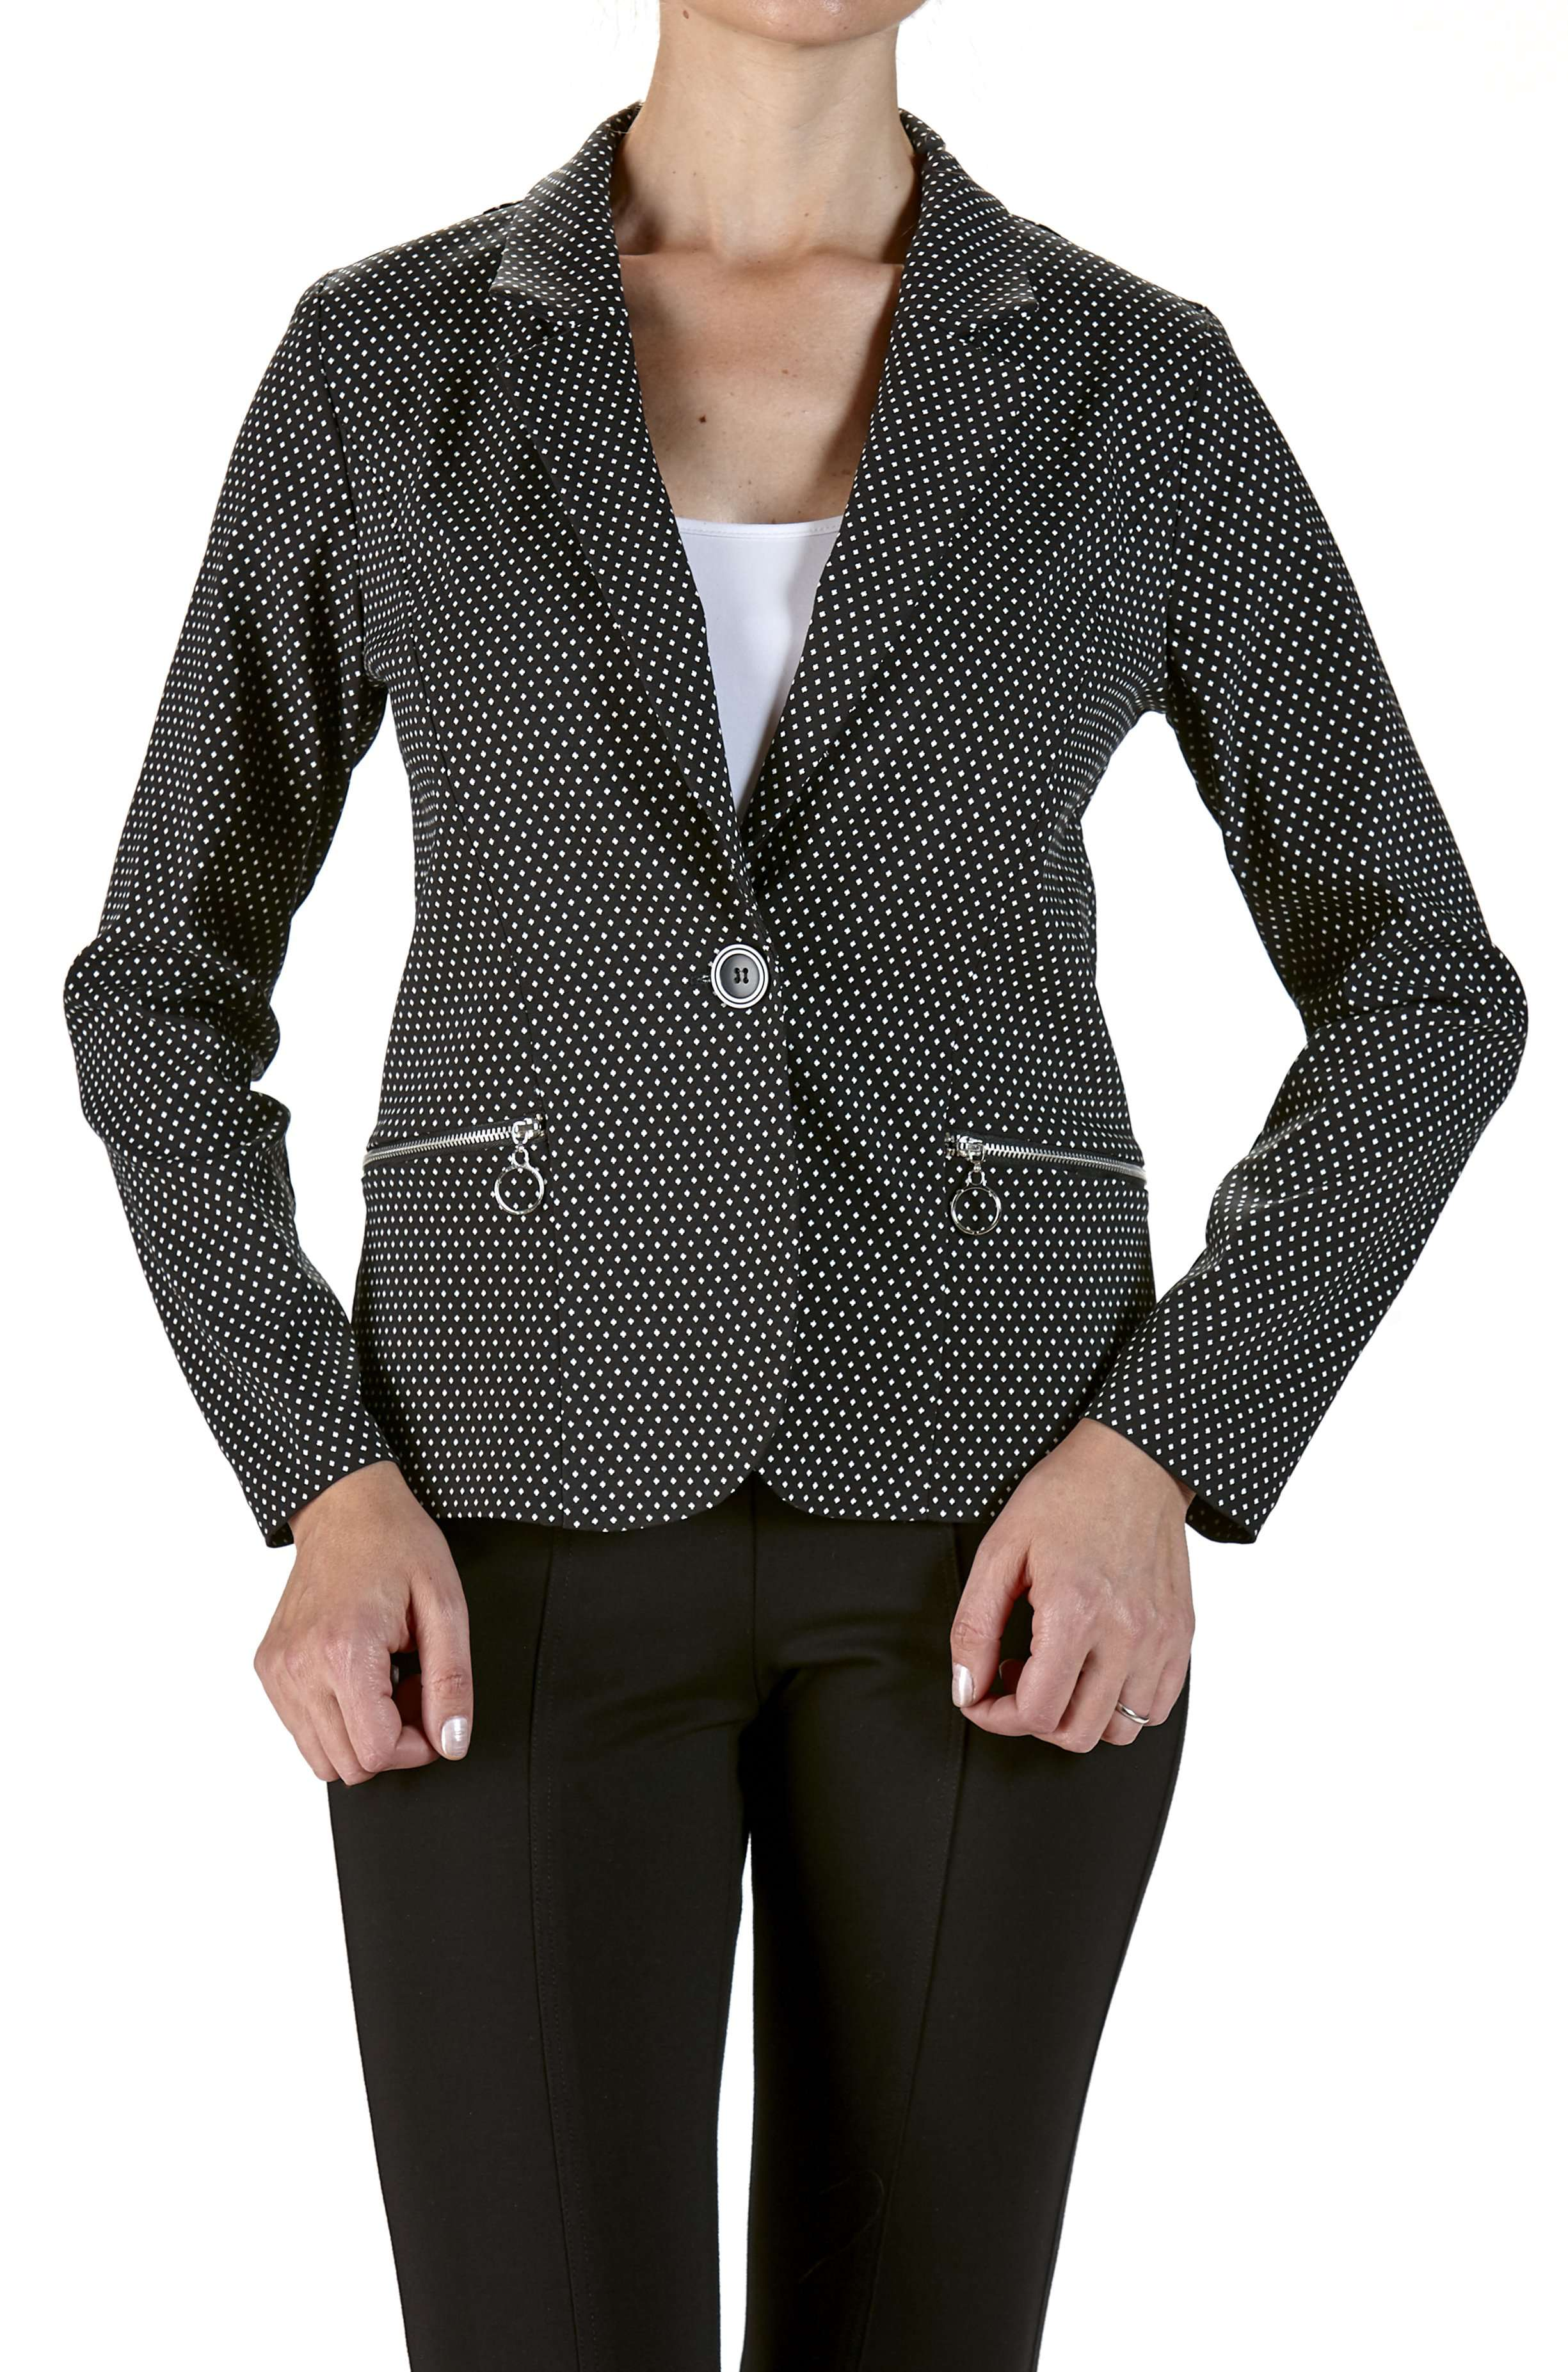 Jacket Black with Small Dots-Zipper Pockets - Yvonne Marie